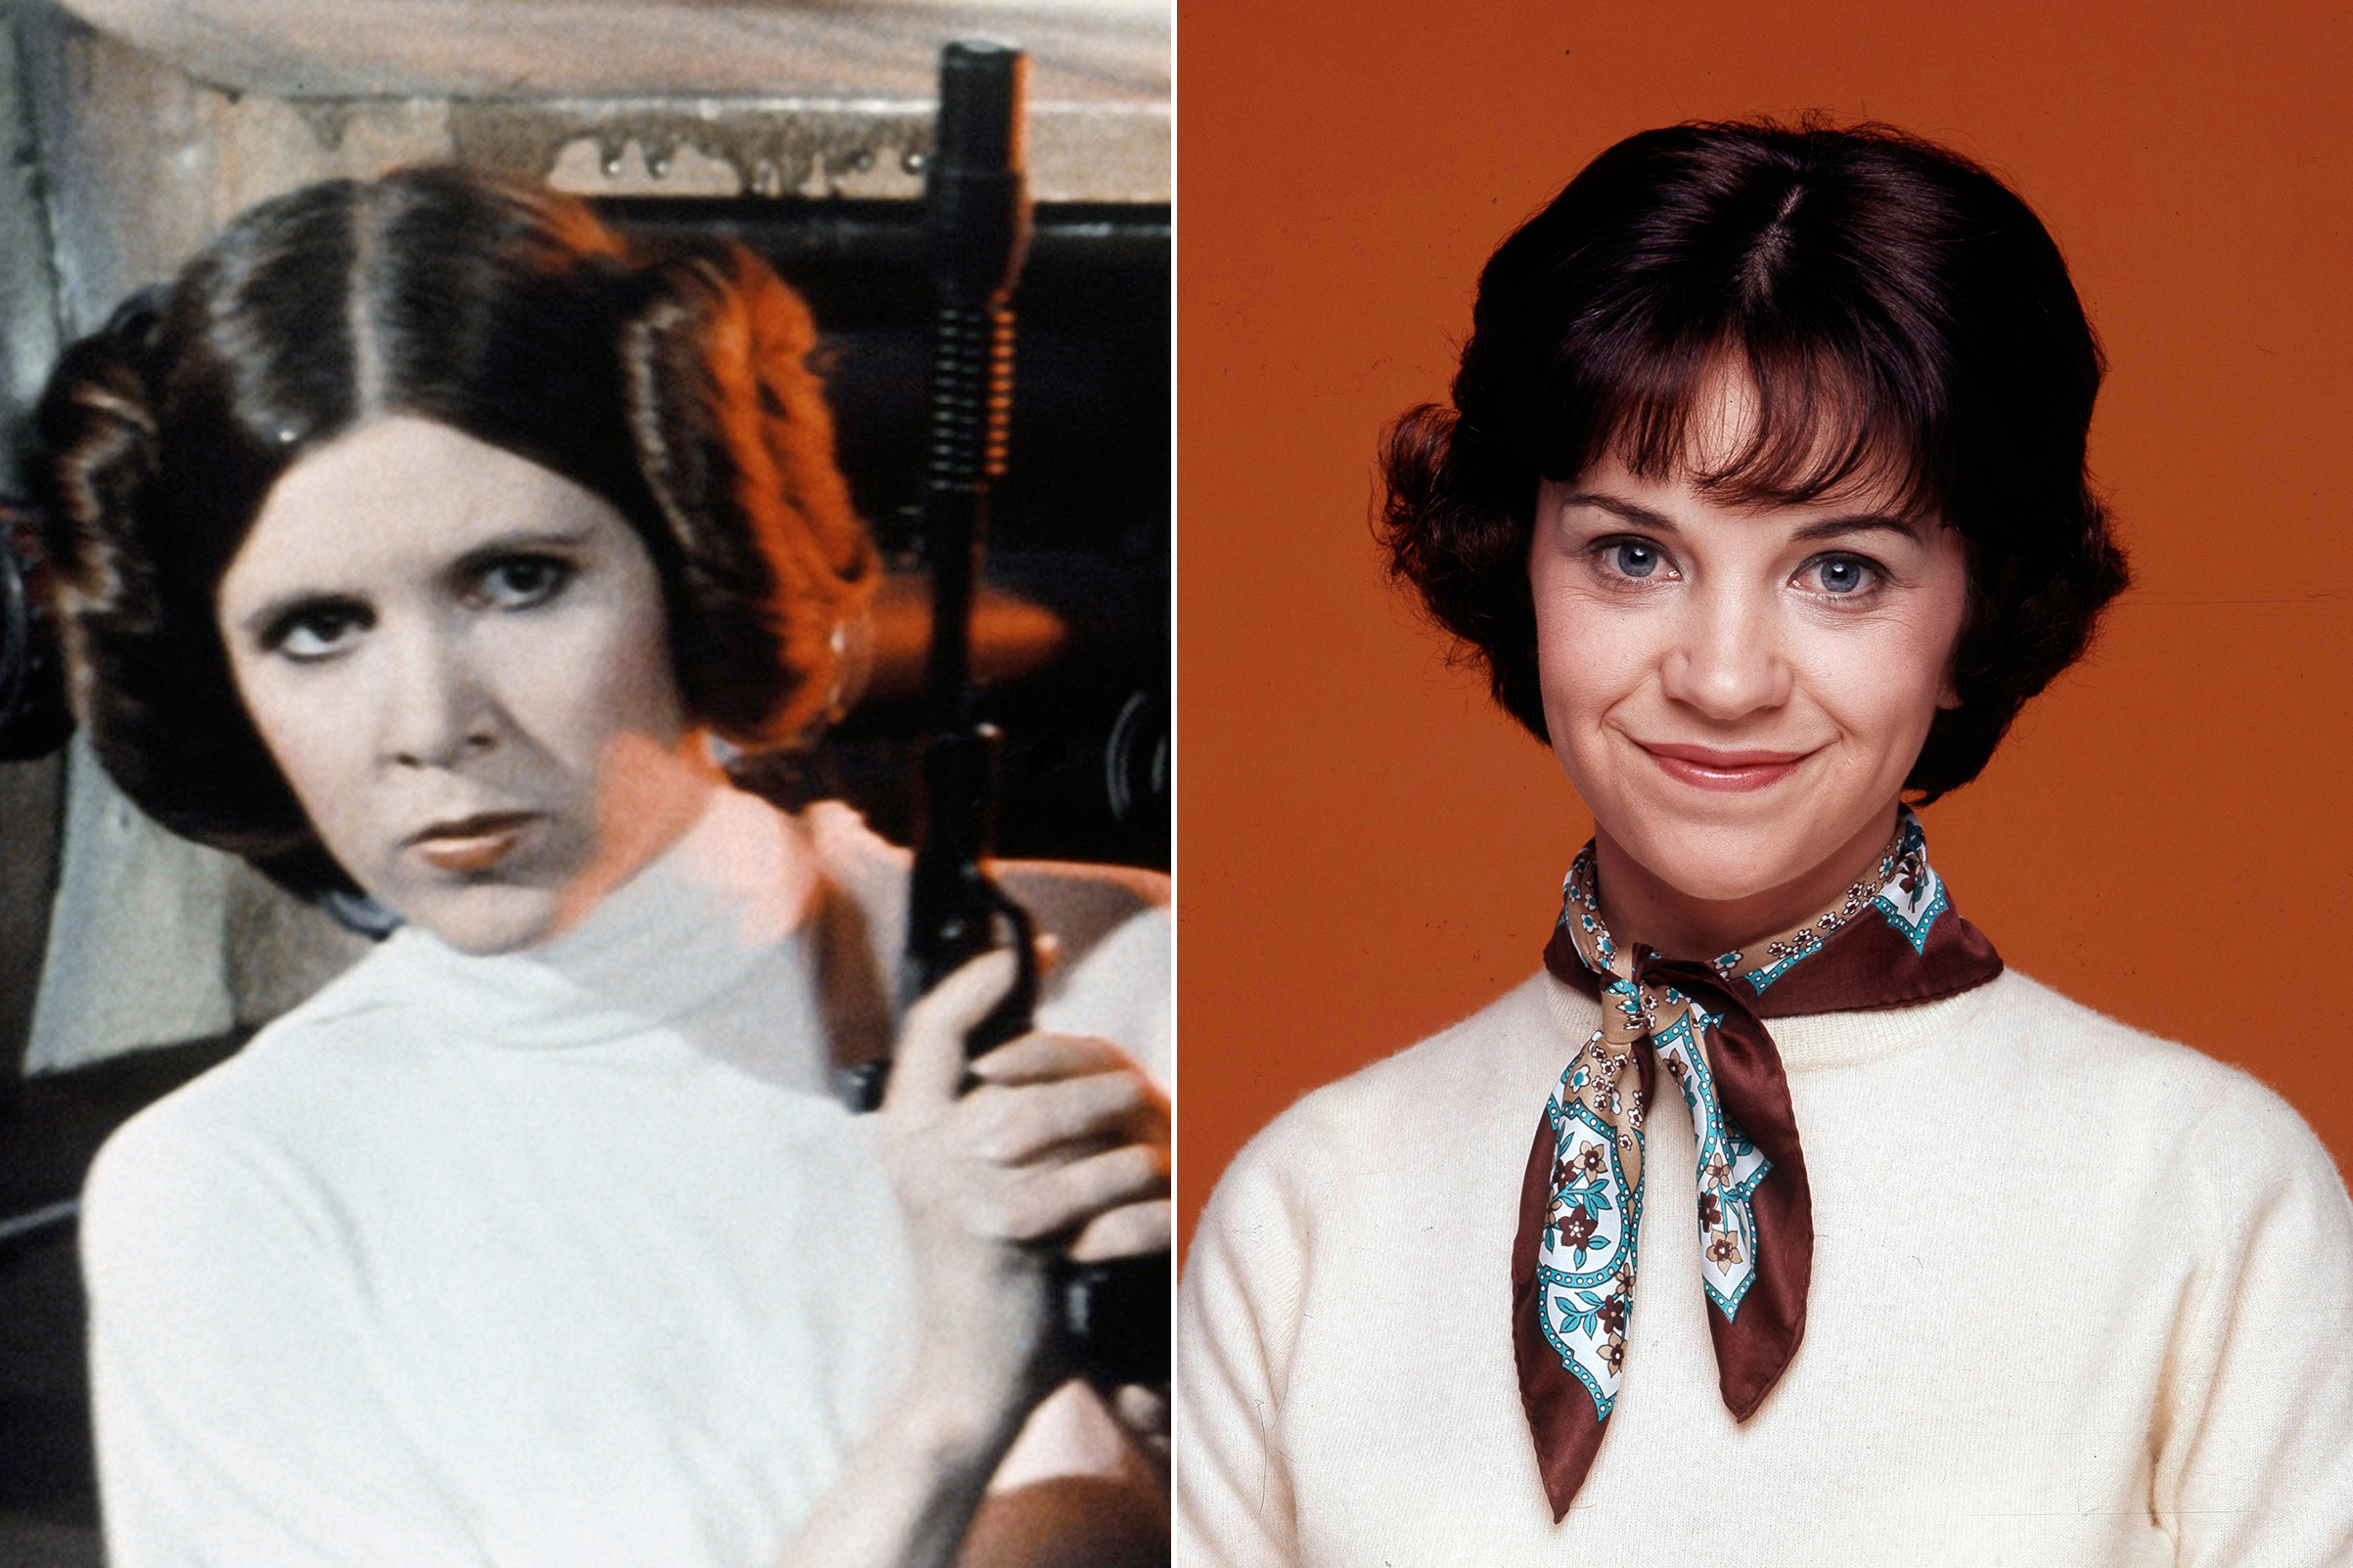 Cindy Williams was almost cast as Princess Leia in Star Wars